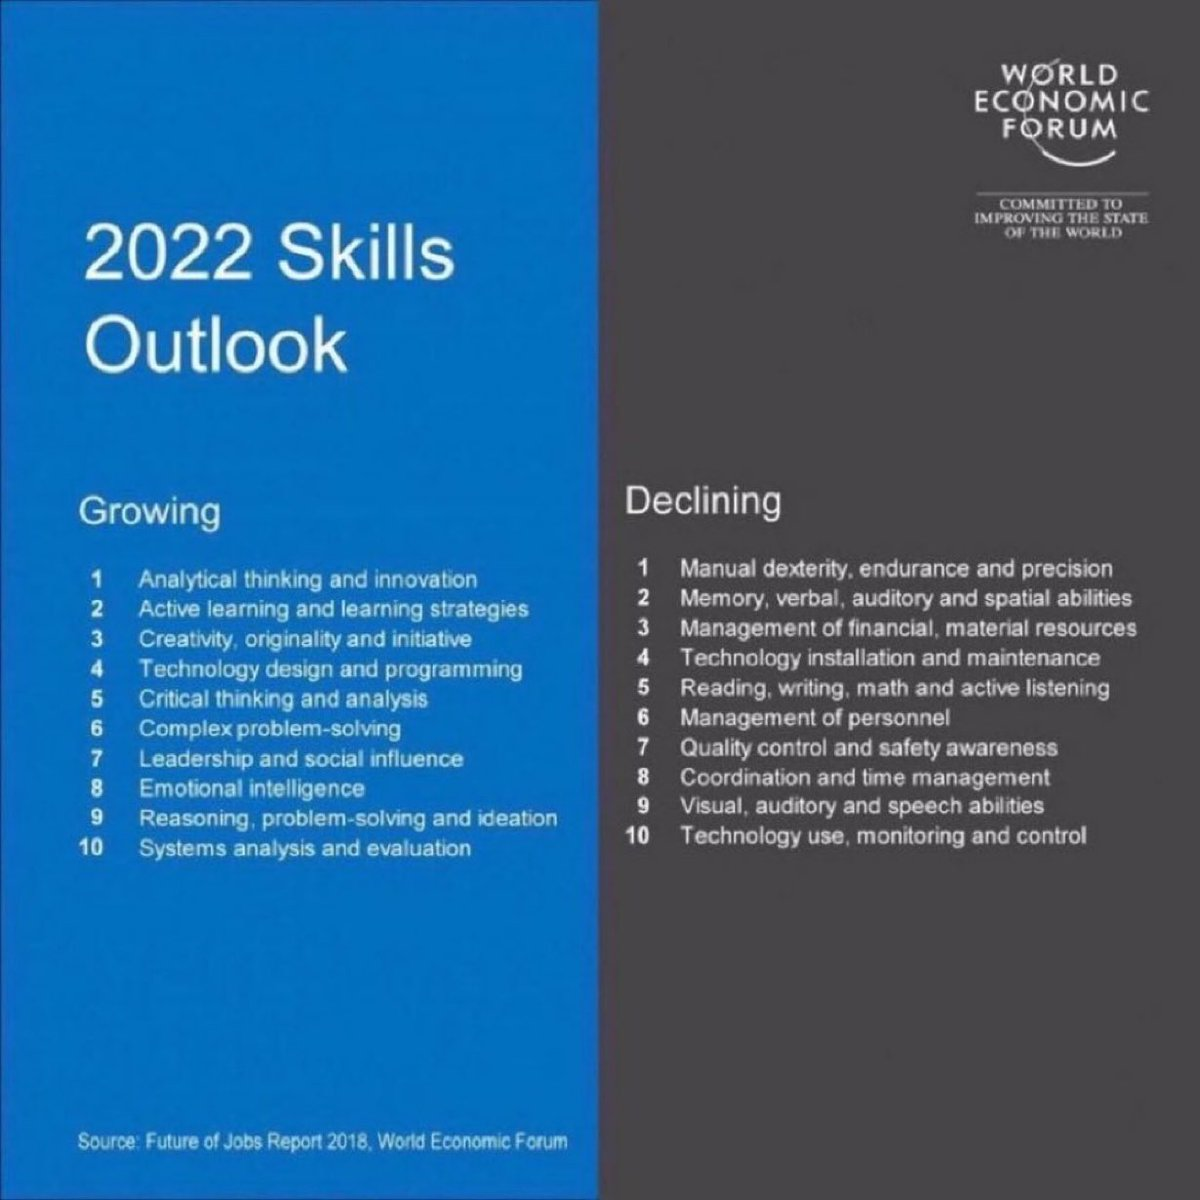 Top 10 skills in 2022:  1 analytical thinking and innovation 2 active learning 3 creativity 4 tech design 5 critical thinking 6 complex problem solving 7 leadership and social influence 8 emotional intelligence  9 reasoning 10 systems analysis  http:// zd.net/2N15ZoM    <br>http://pic.twitter.com/7iVw5TjcfK